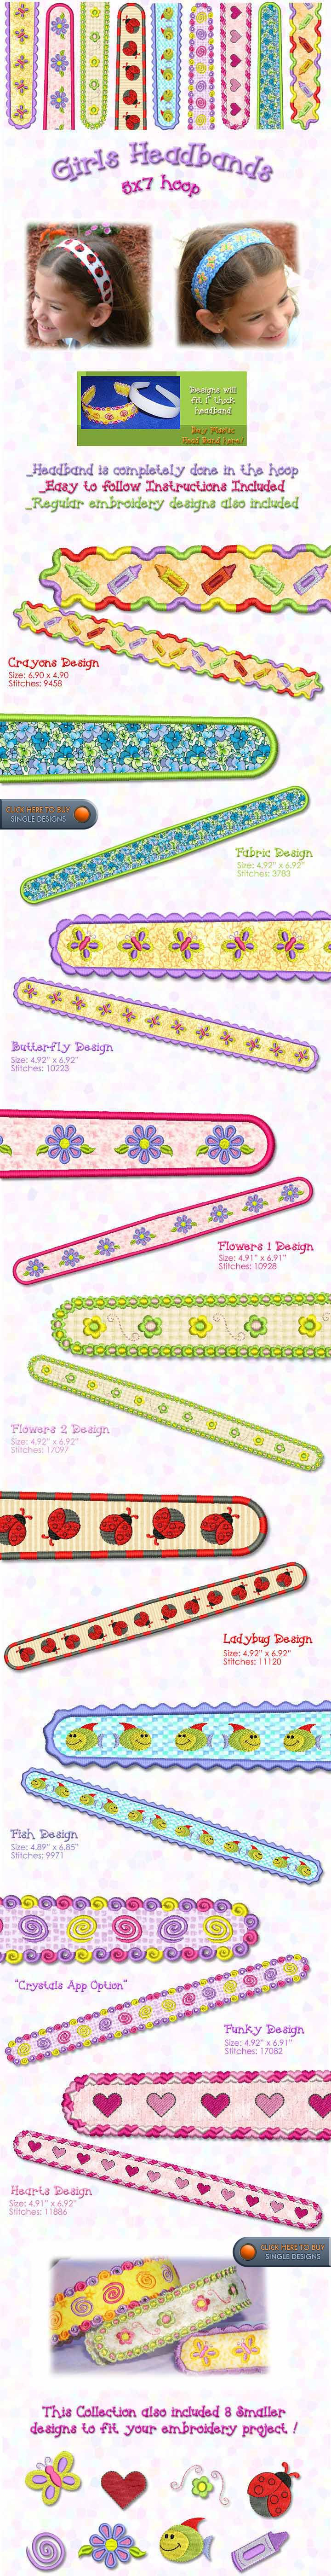 Cute headbands - monogramming in the hoop design